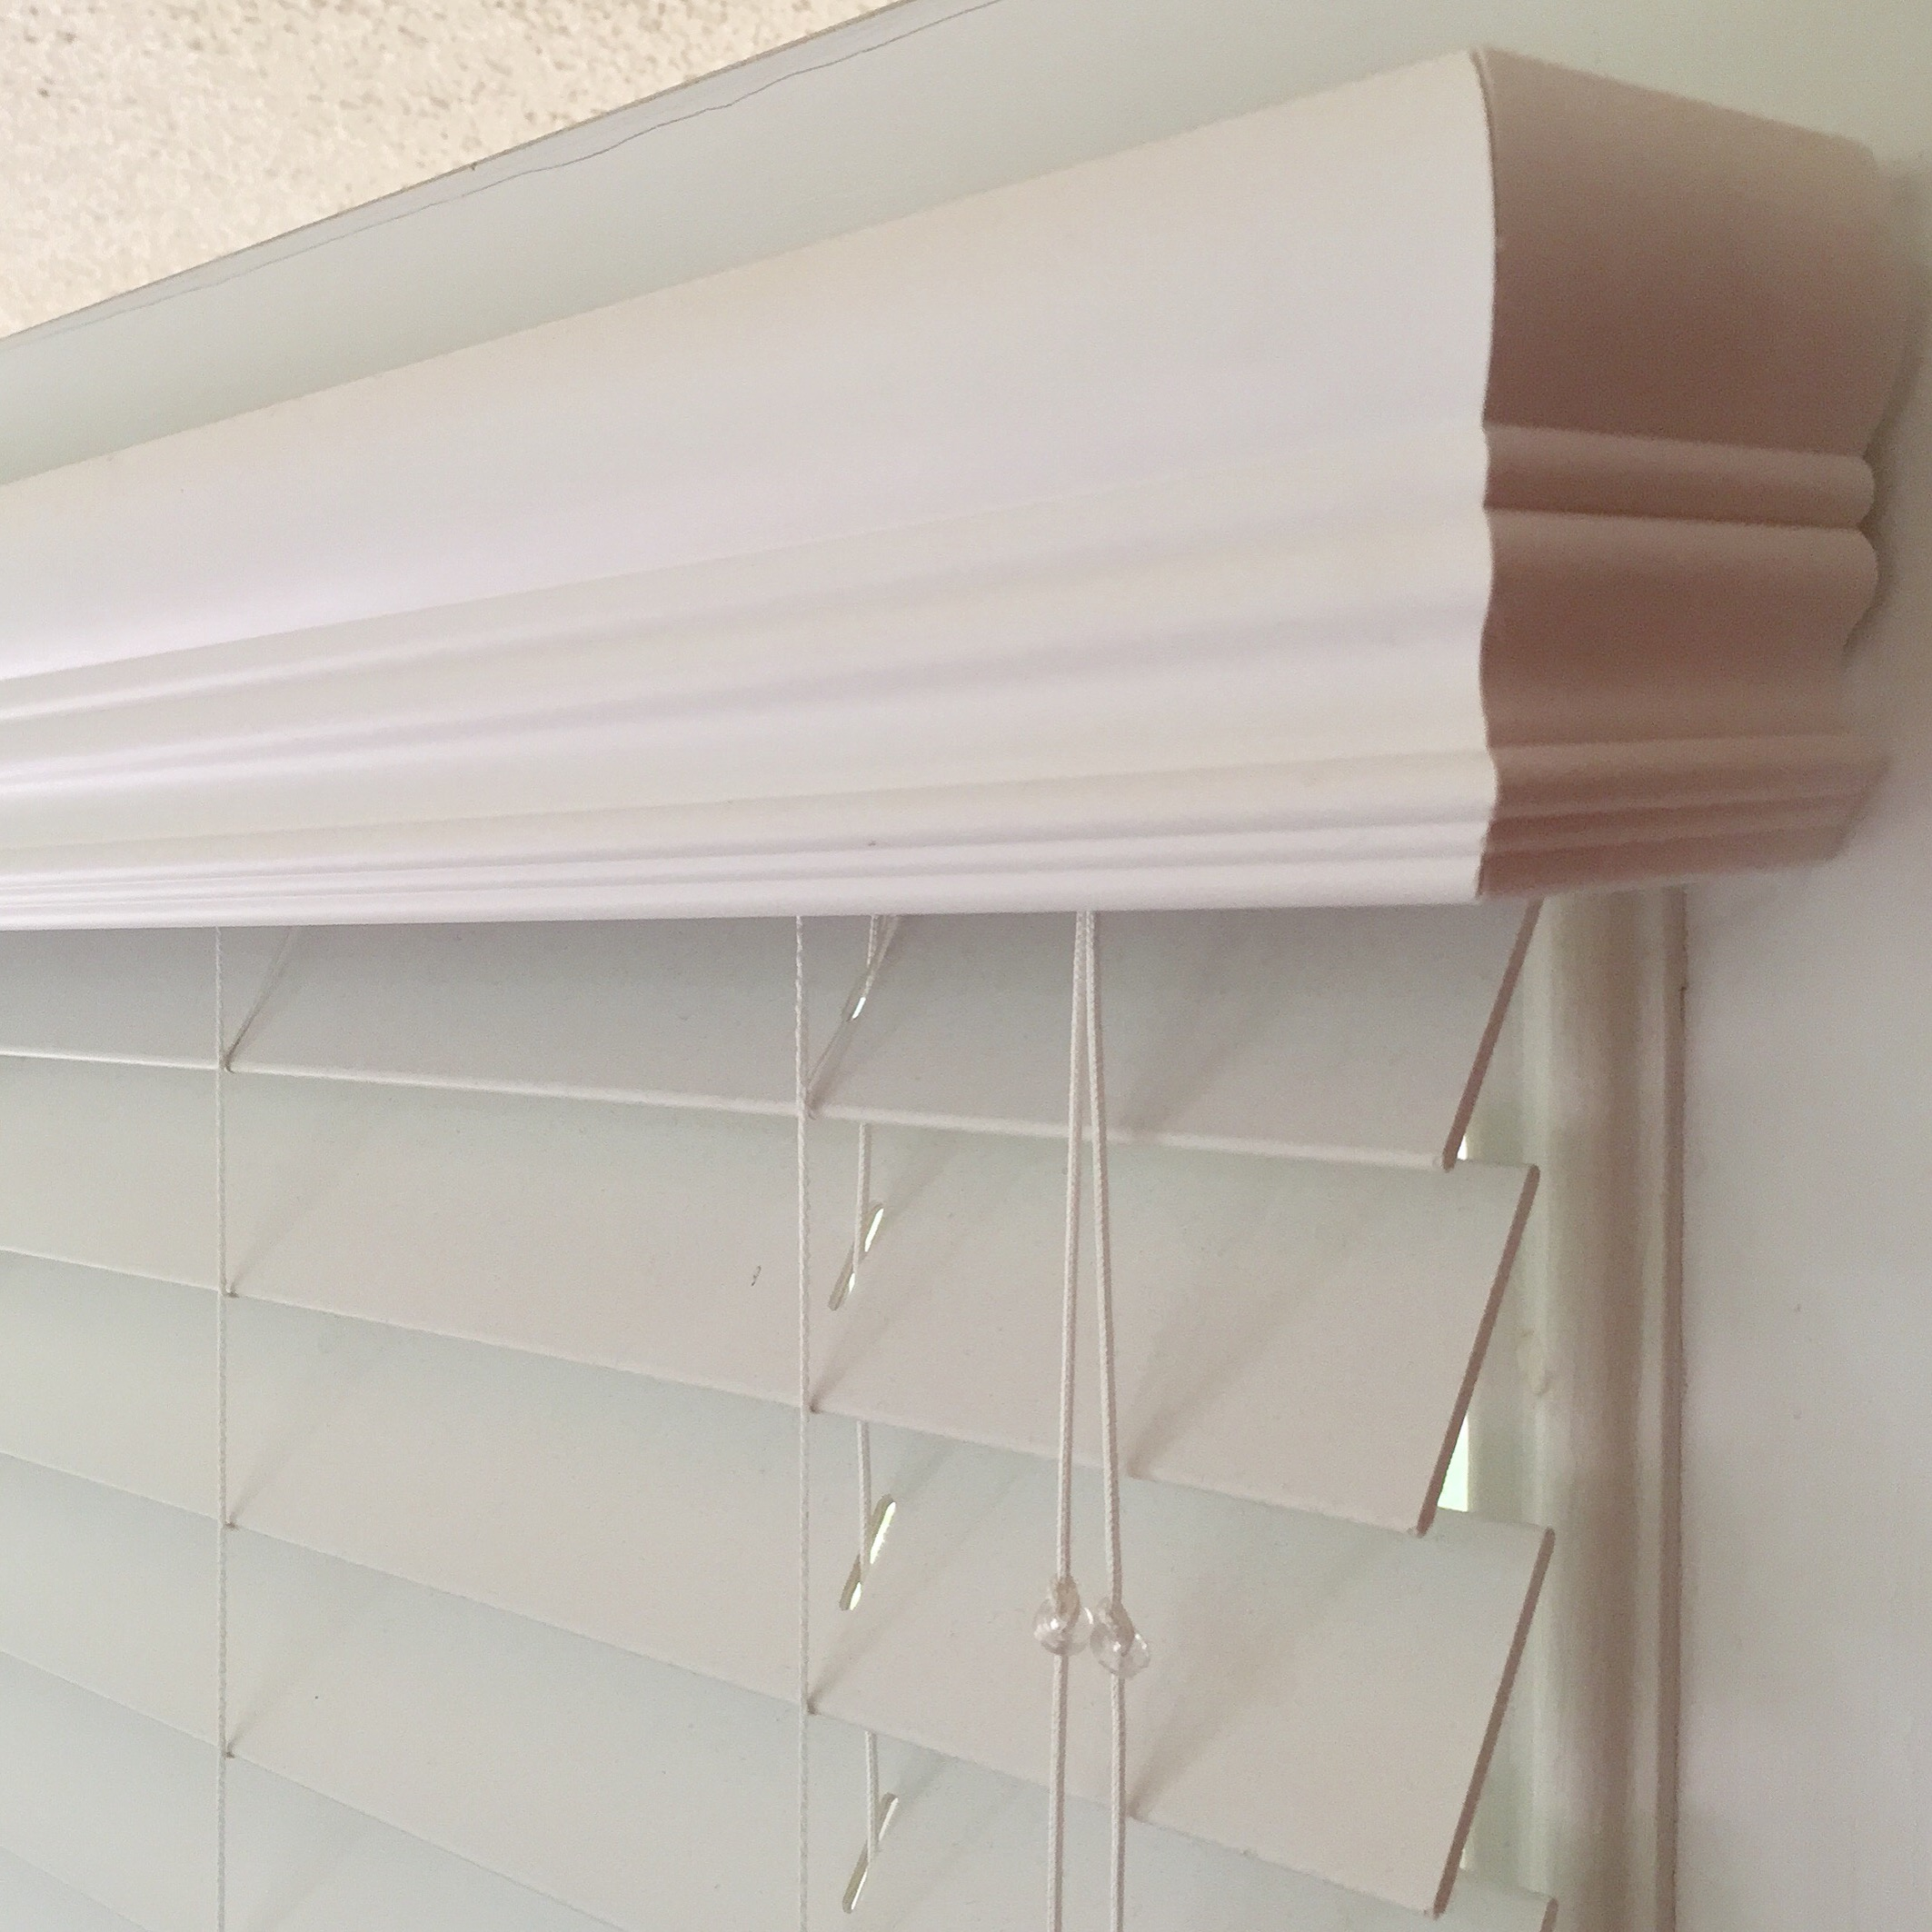 Faux & True Wood Blinds  - hundreds of material choices with decorative drown valances and multiple operating systems including Child Safe Certified